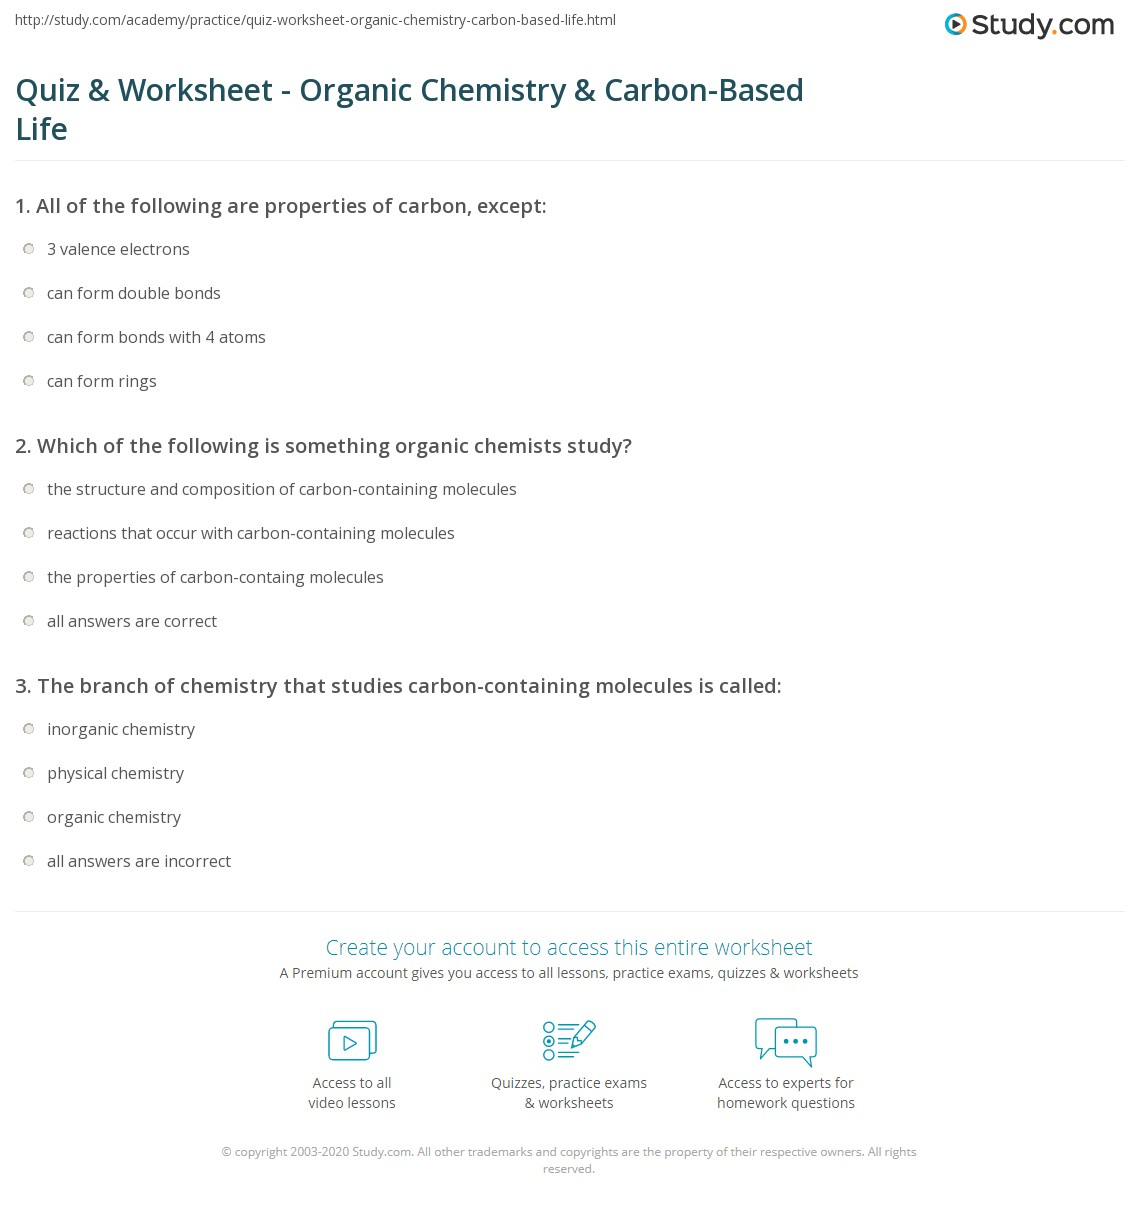 Quiz & Worksheet - Organic Chemistry & Carbon-Based Life | Study.com